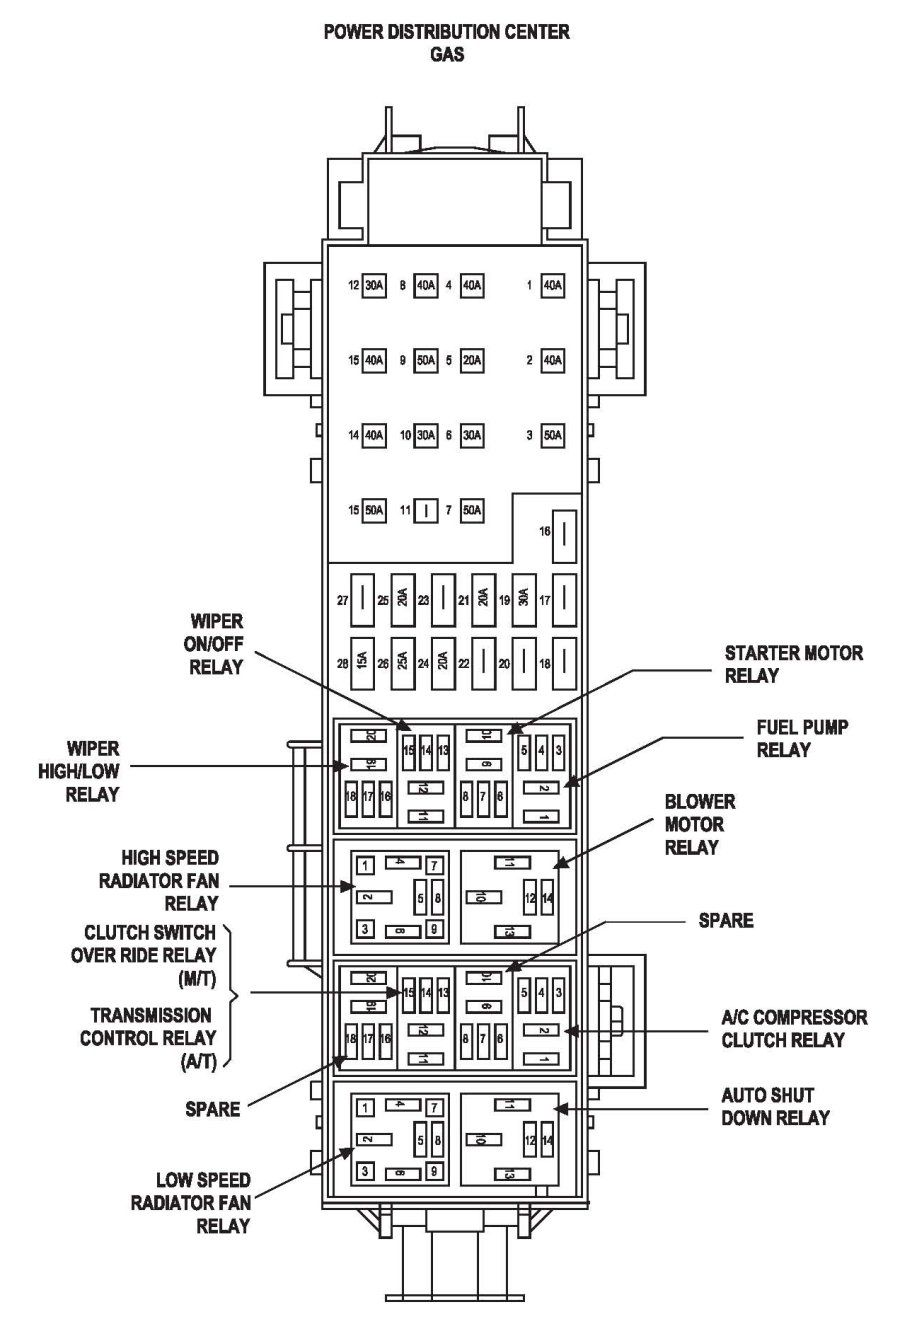 2003 jeep liberty fuse panel diagram wiring diagrams 2002 jeep fuse box diagram 2003 jeep fuse box [ 900 x 1336 Pixel ]